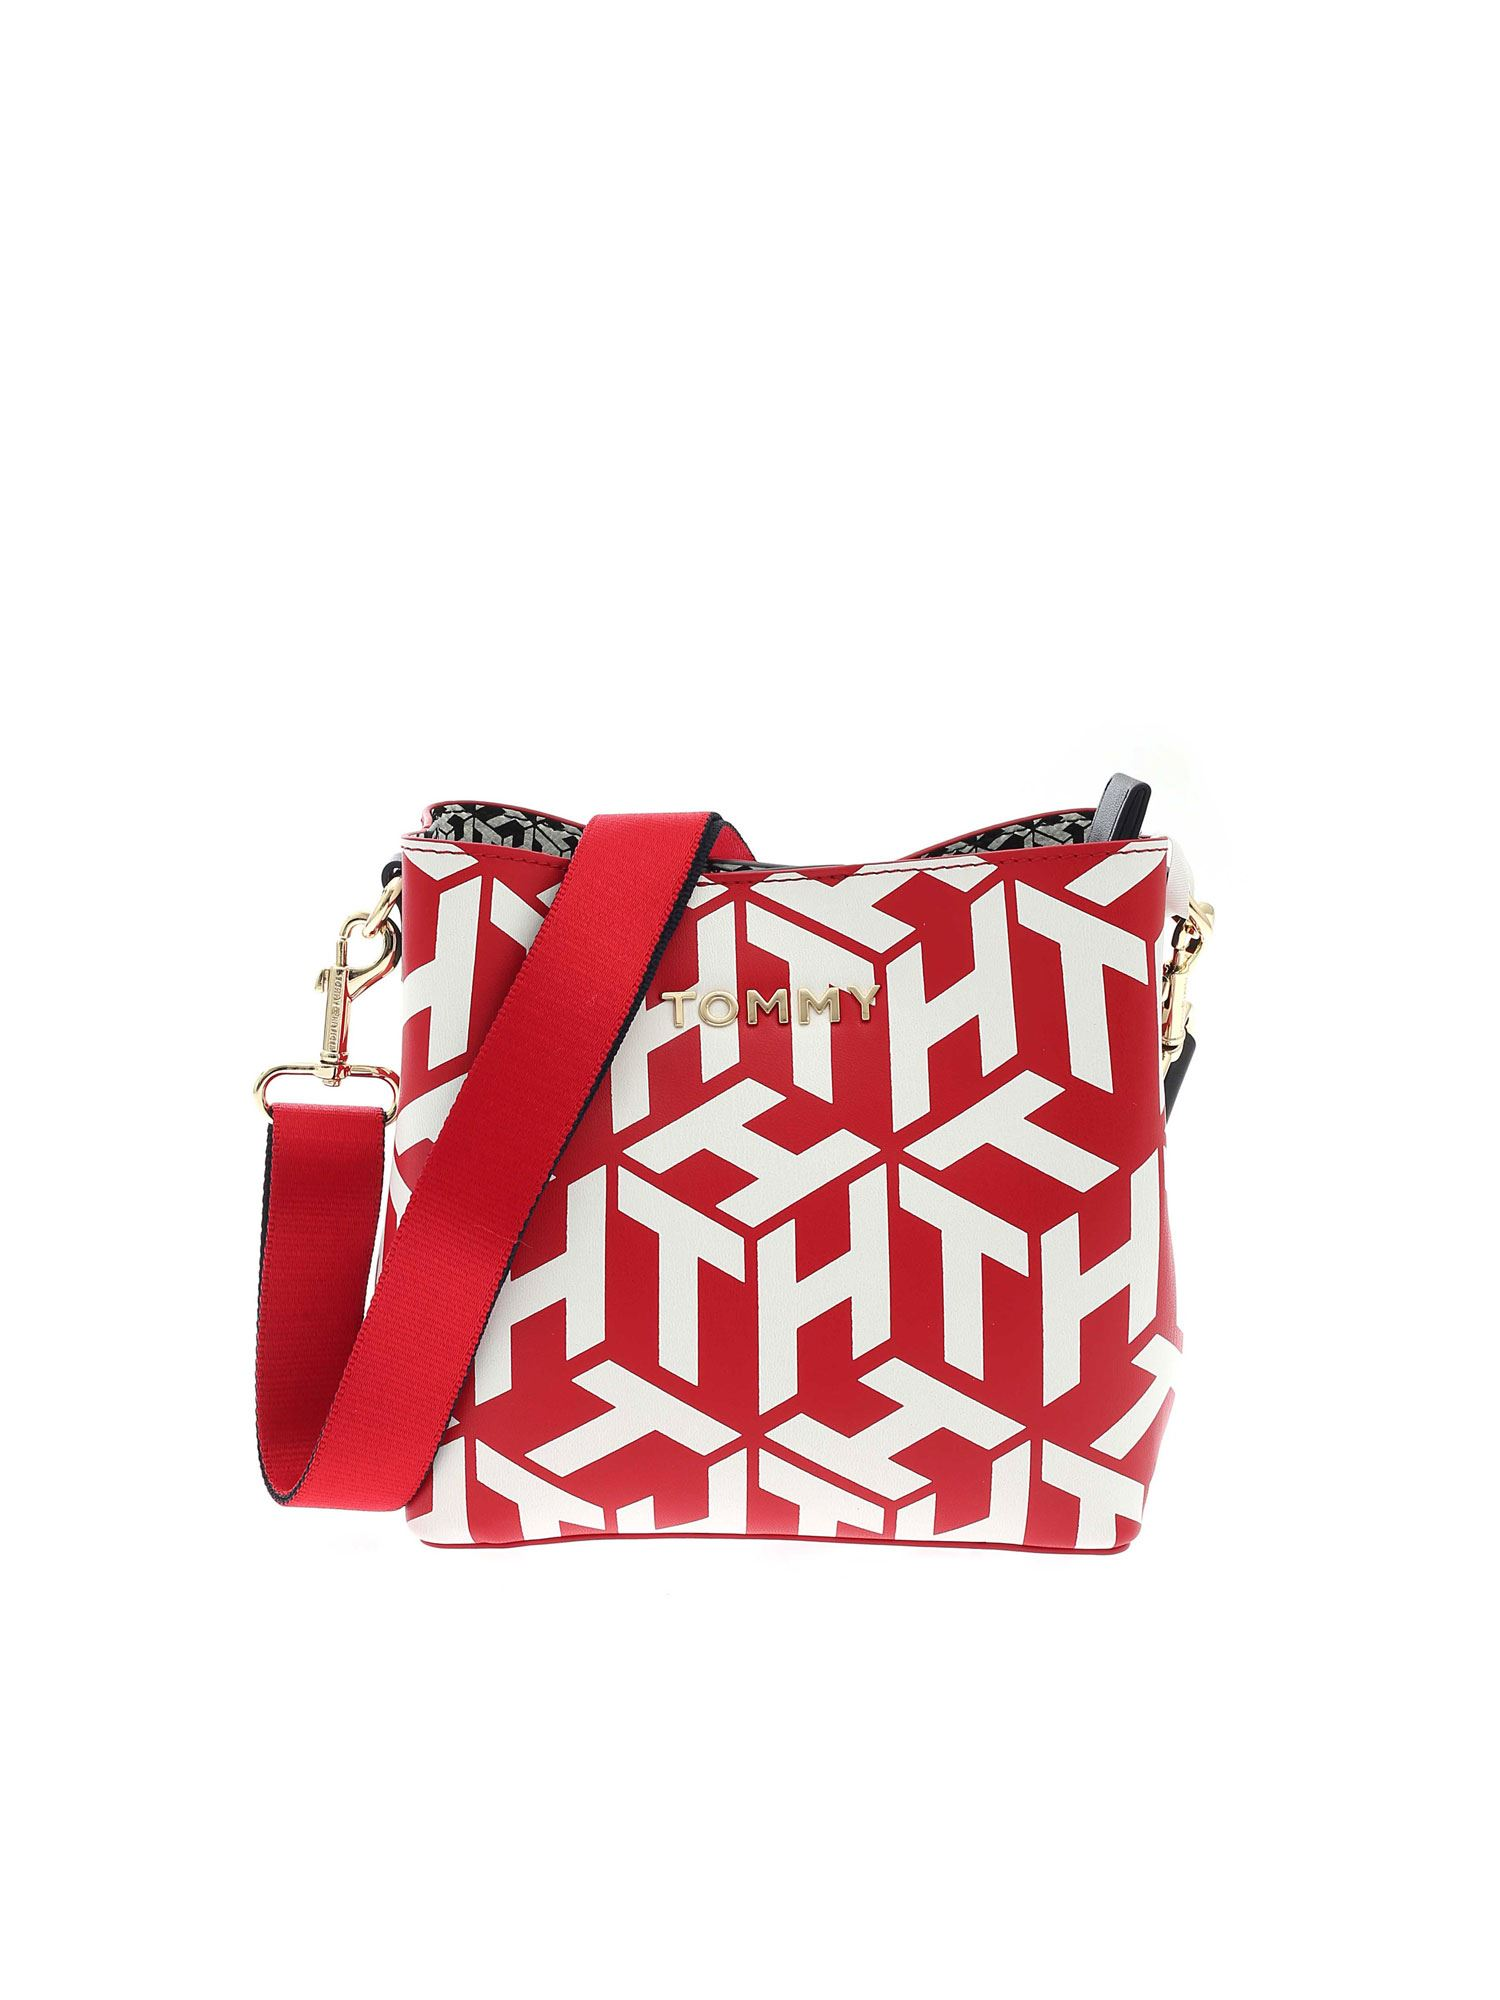 Tommy Hilfiger ICONIC TOMMY BUCKET BAG IN RED